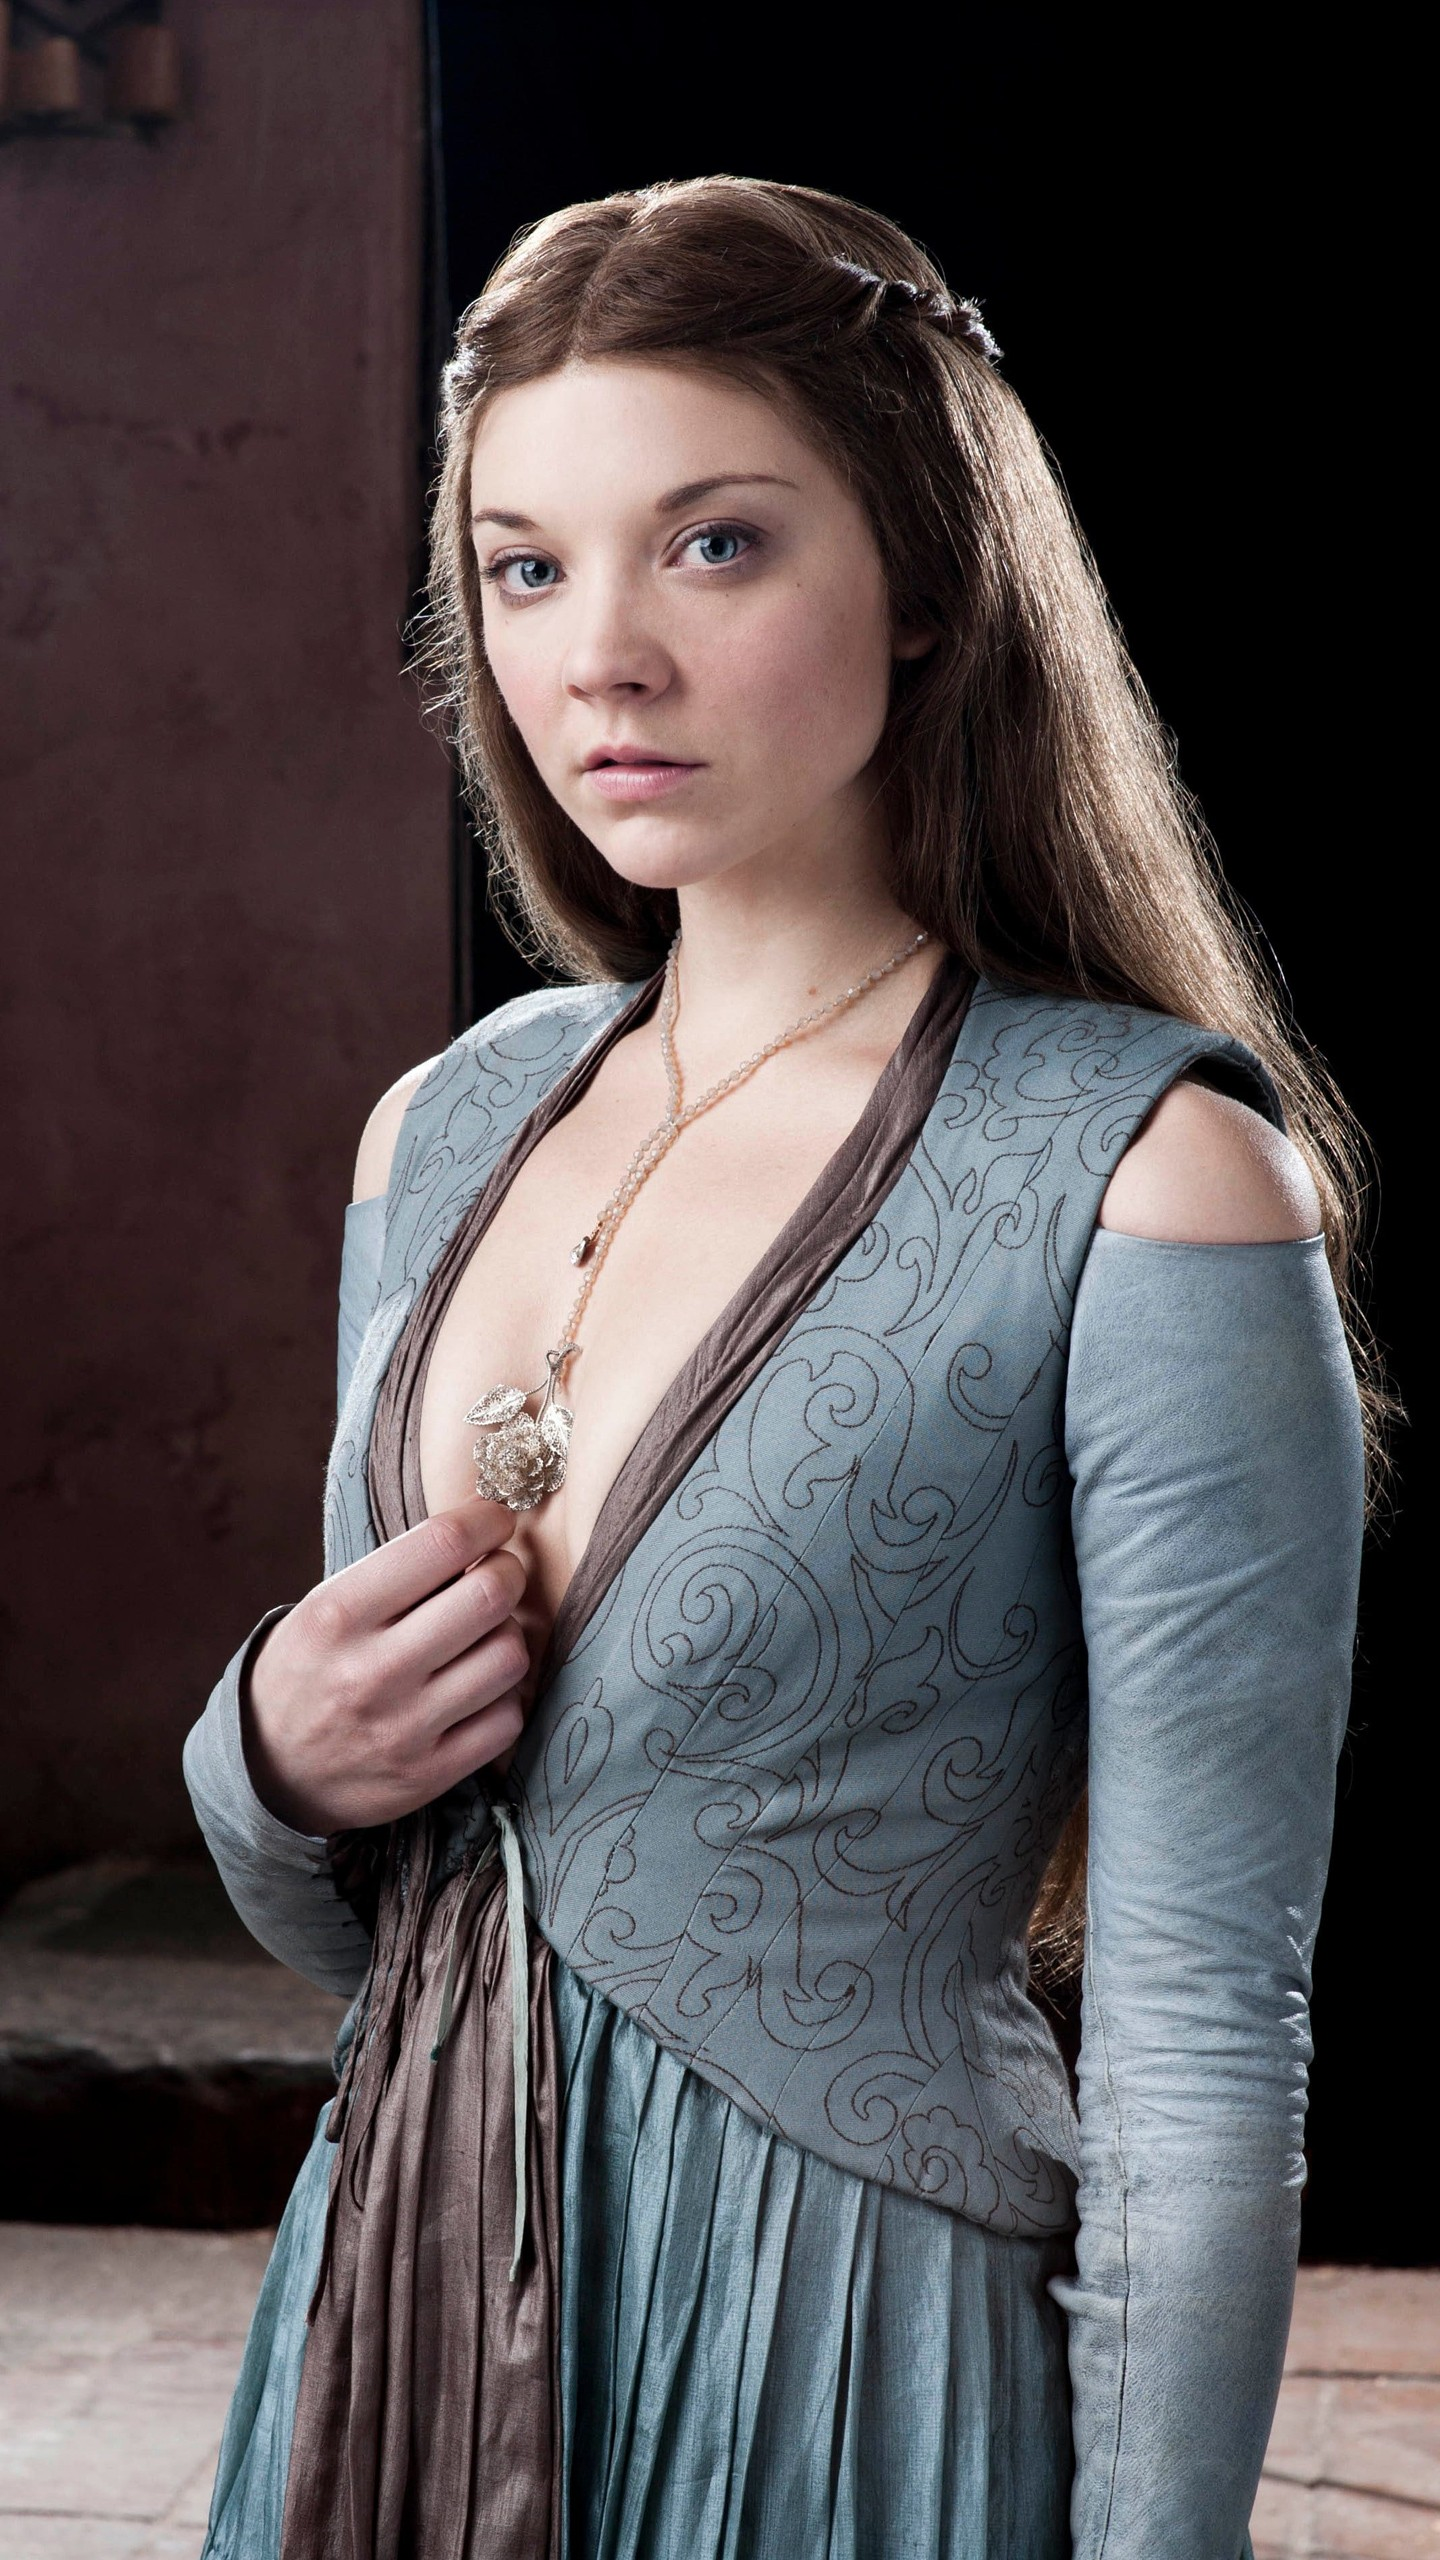 Game Of Thrones Iphone Wallpaper Hd Natalie Dormer As Margaery Tyrell In Game Of Thrones